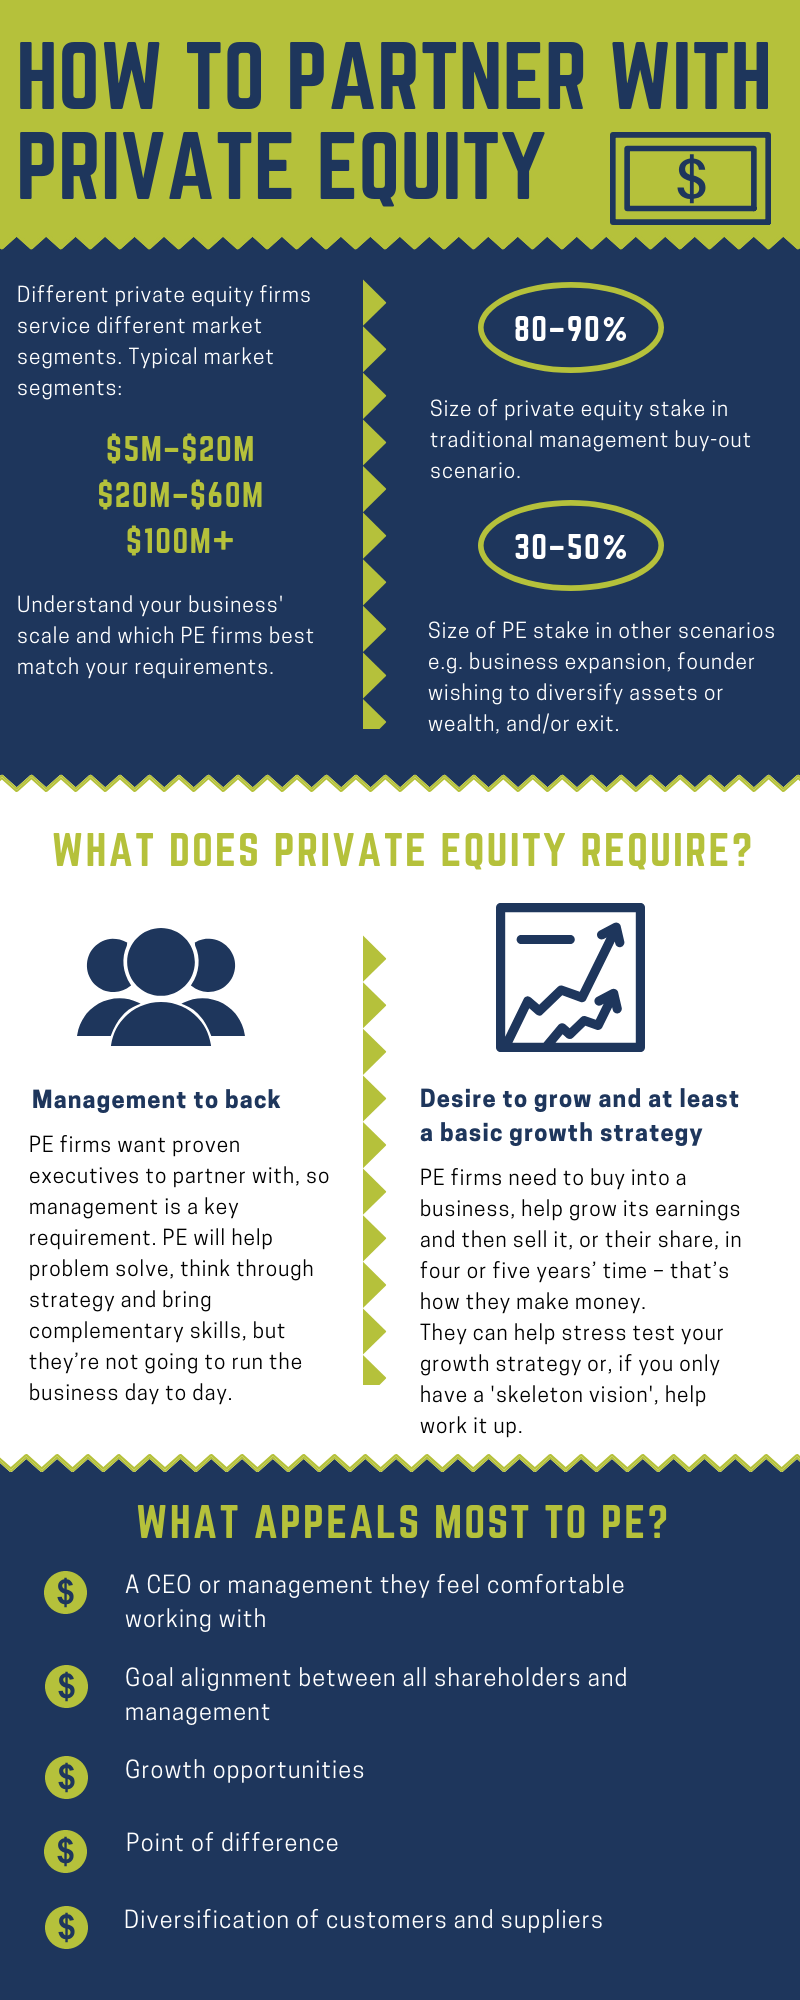 How to partner with private equity